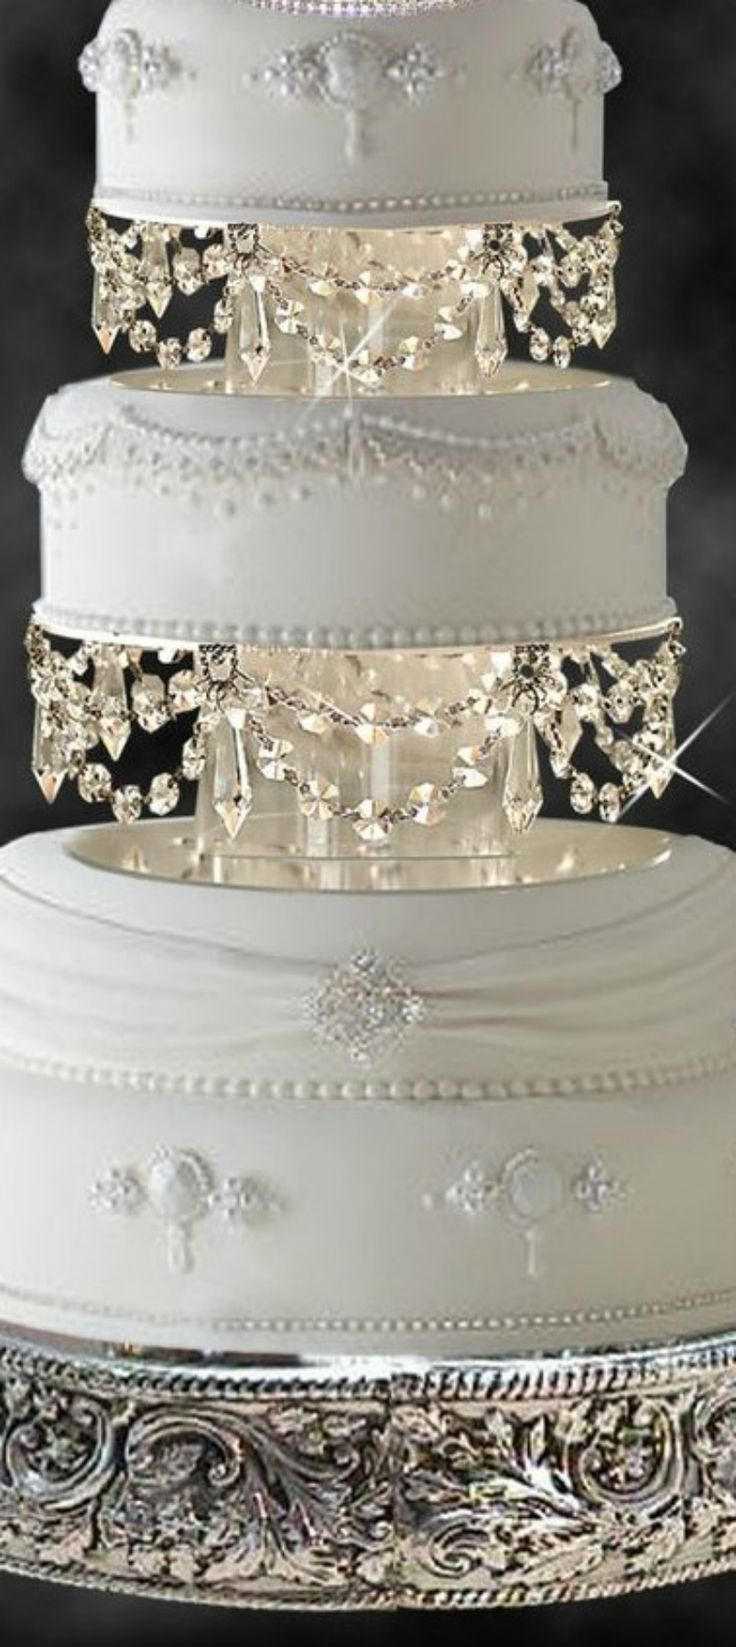 wedding cakes sophisticated cake with crystals and silver